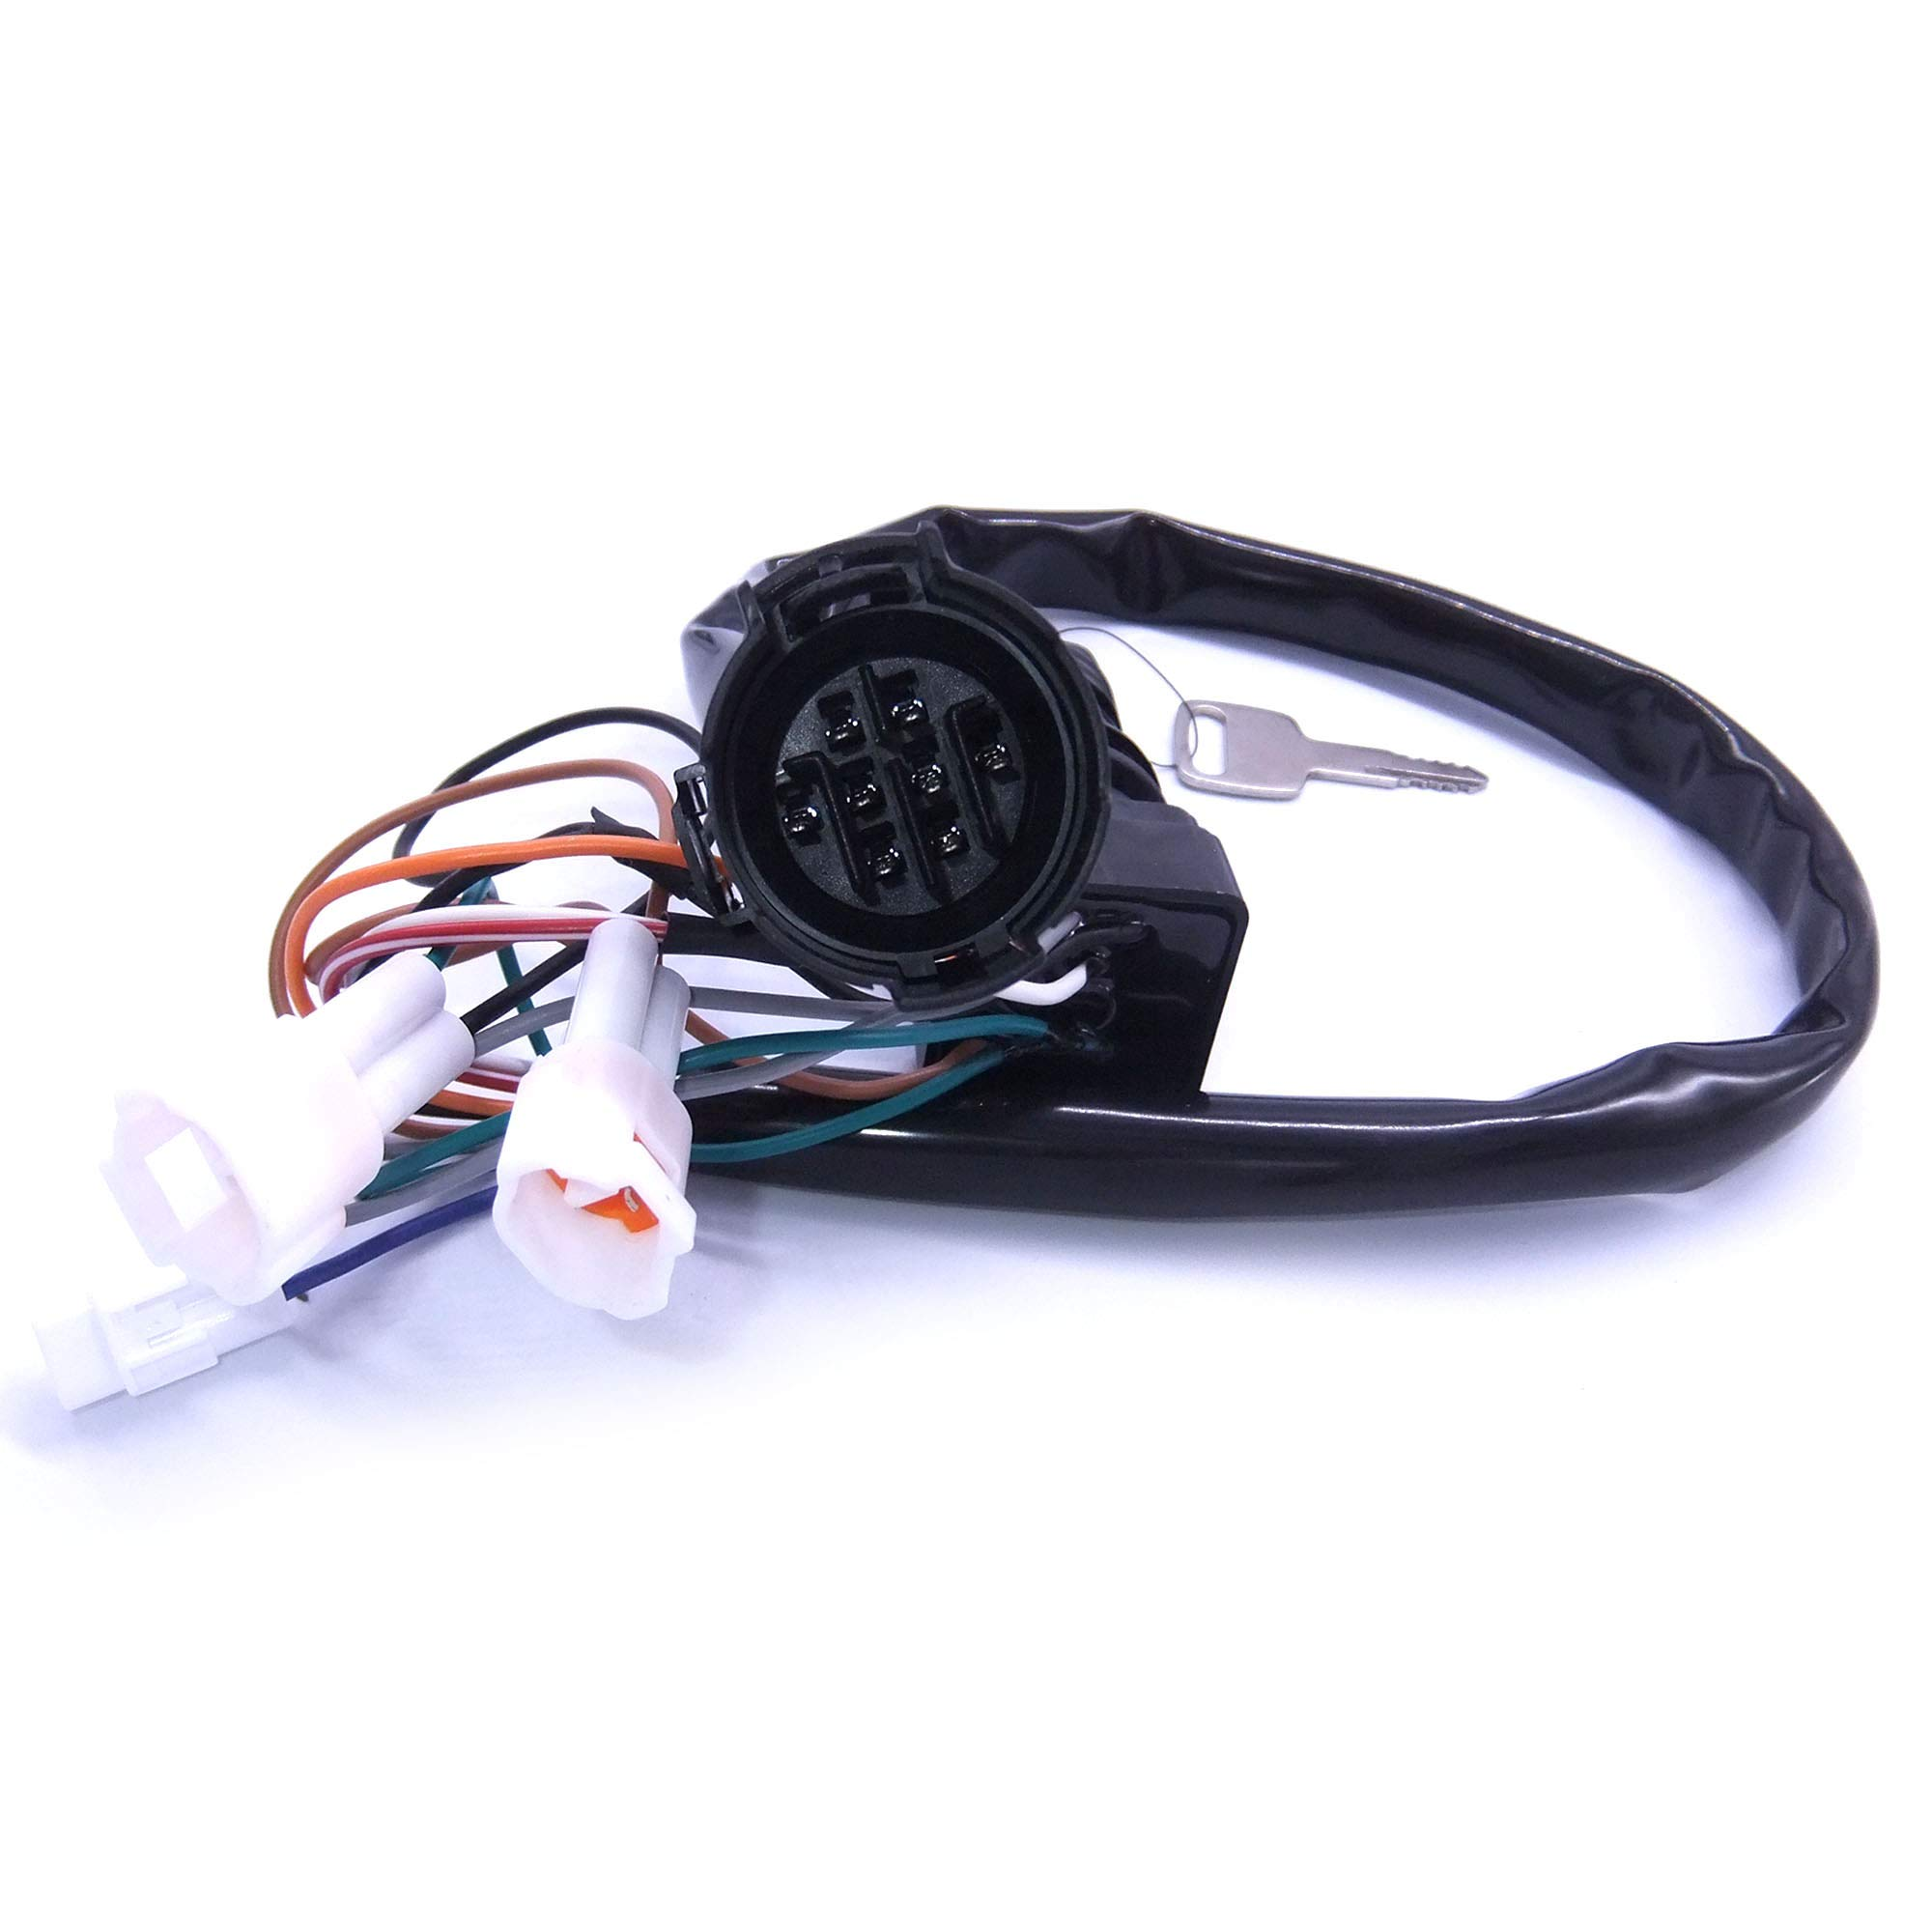 SouthMarine 37110-93J00 37110-93J01 Boat Motor Ignition Switch Assembly for Suzuki Outboard Motor by SouthMarine (Image #3)